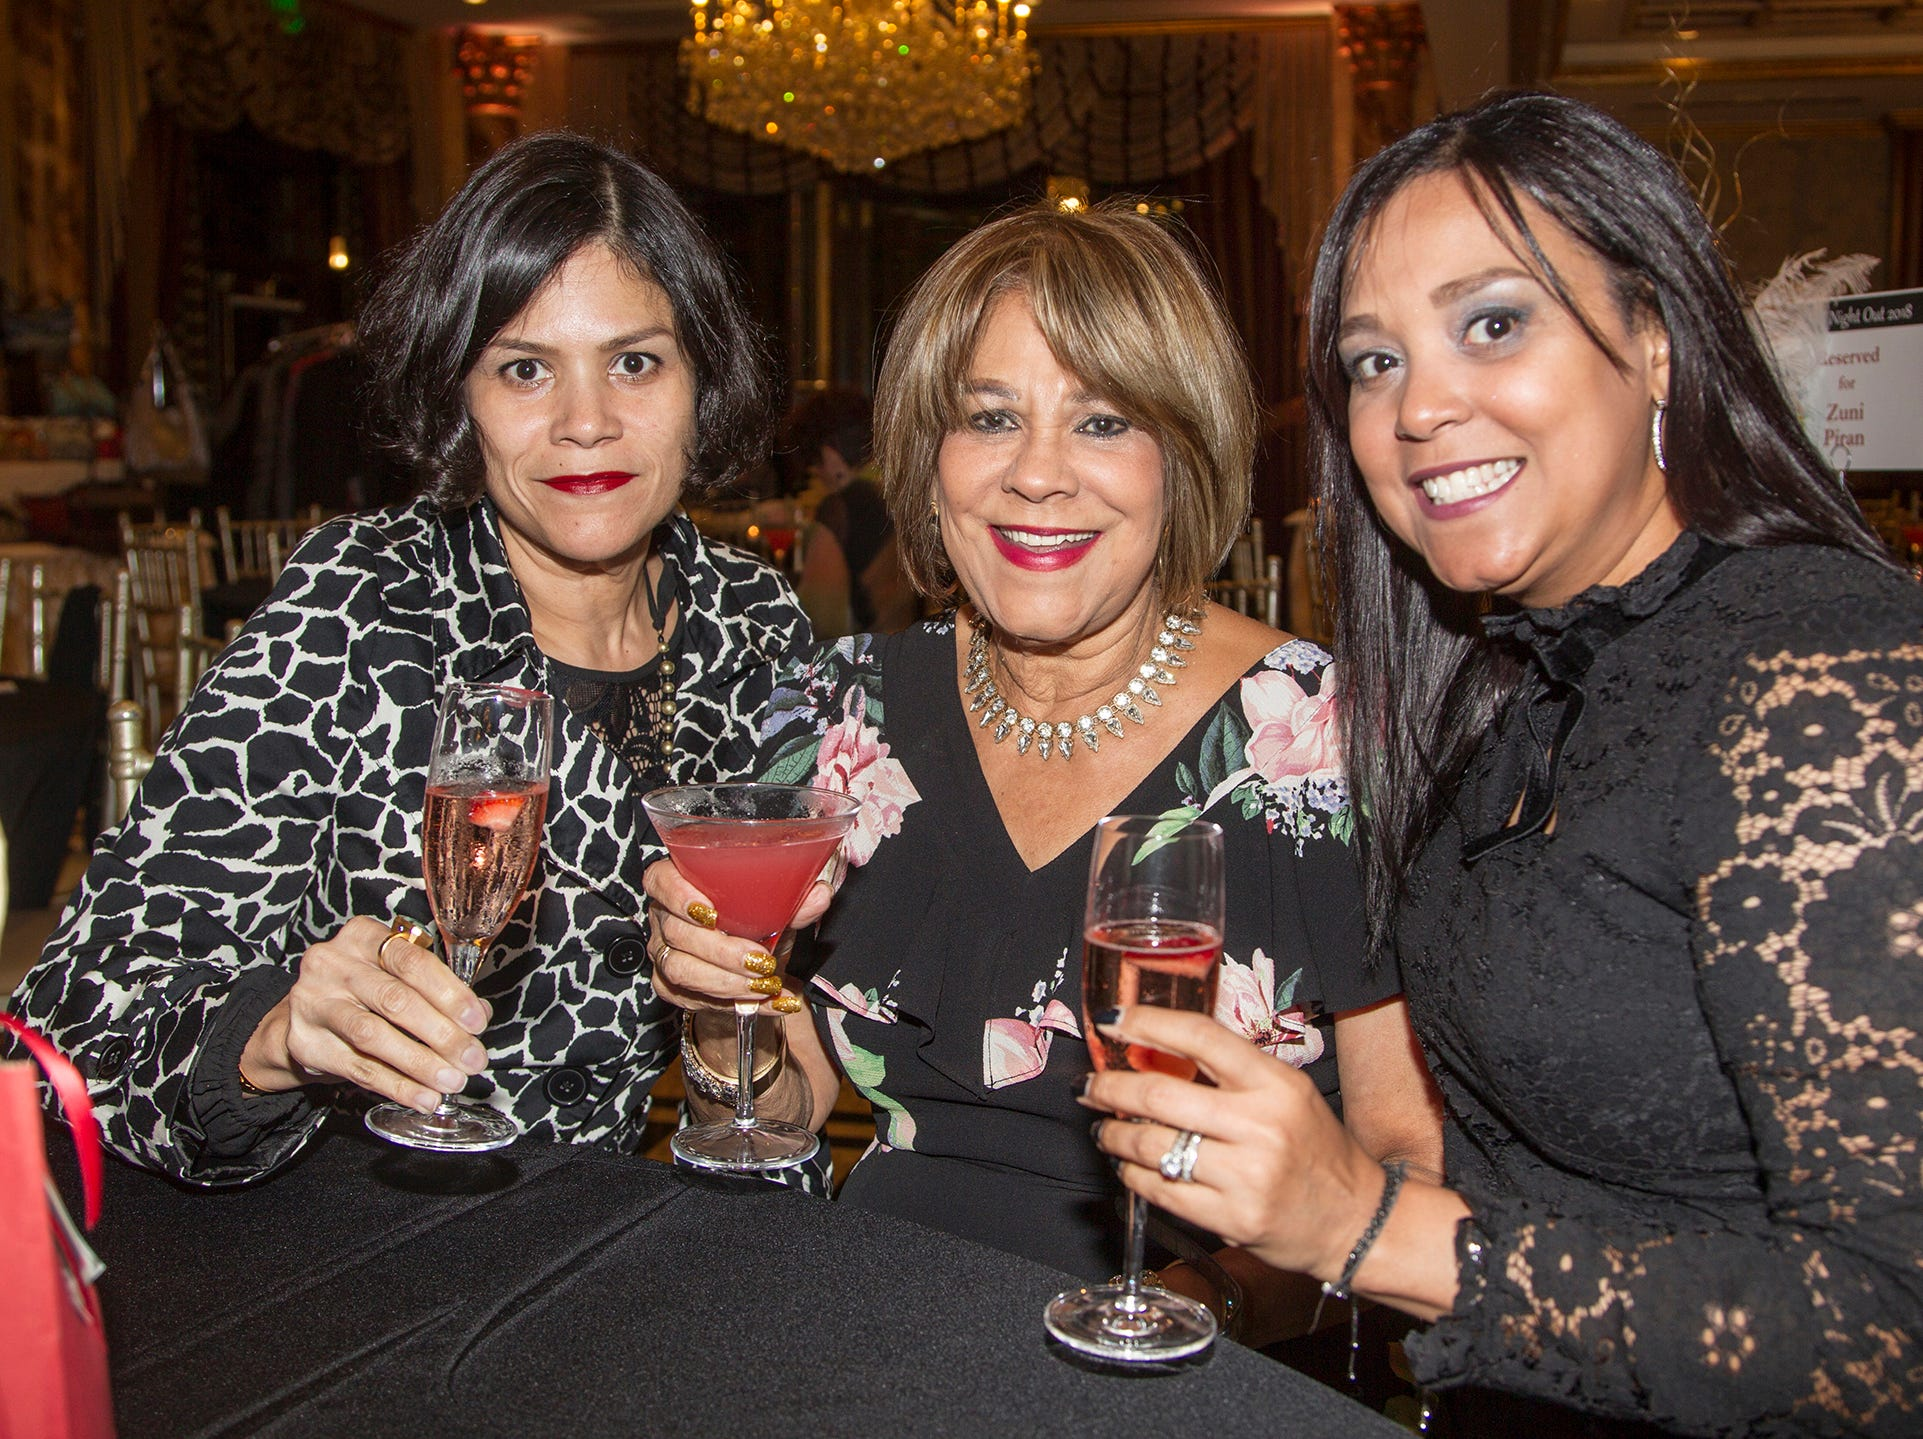 Zuni Piran, Zuna Guzman, Patricia Storzollo. Saddle River Day School sponsors Ladies Night Out at Seasons in Washington Twp.  11/01/2018